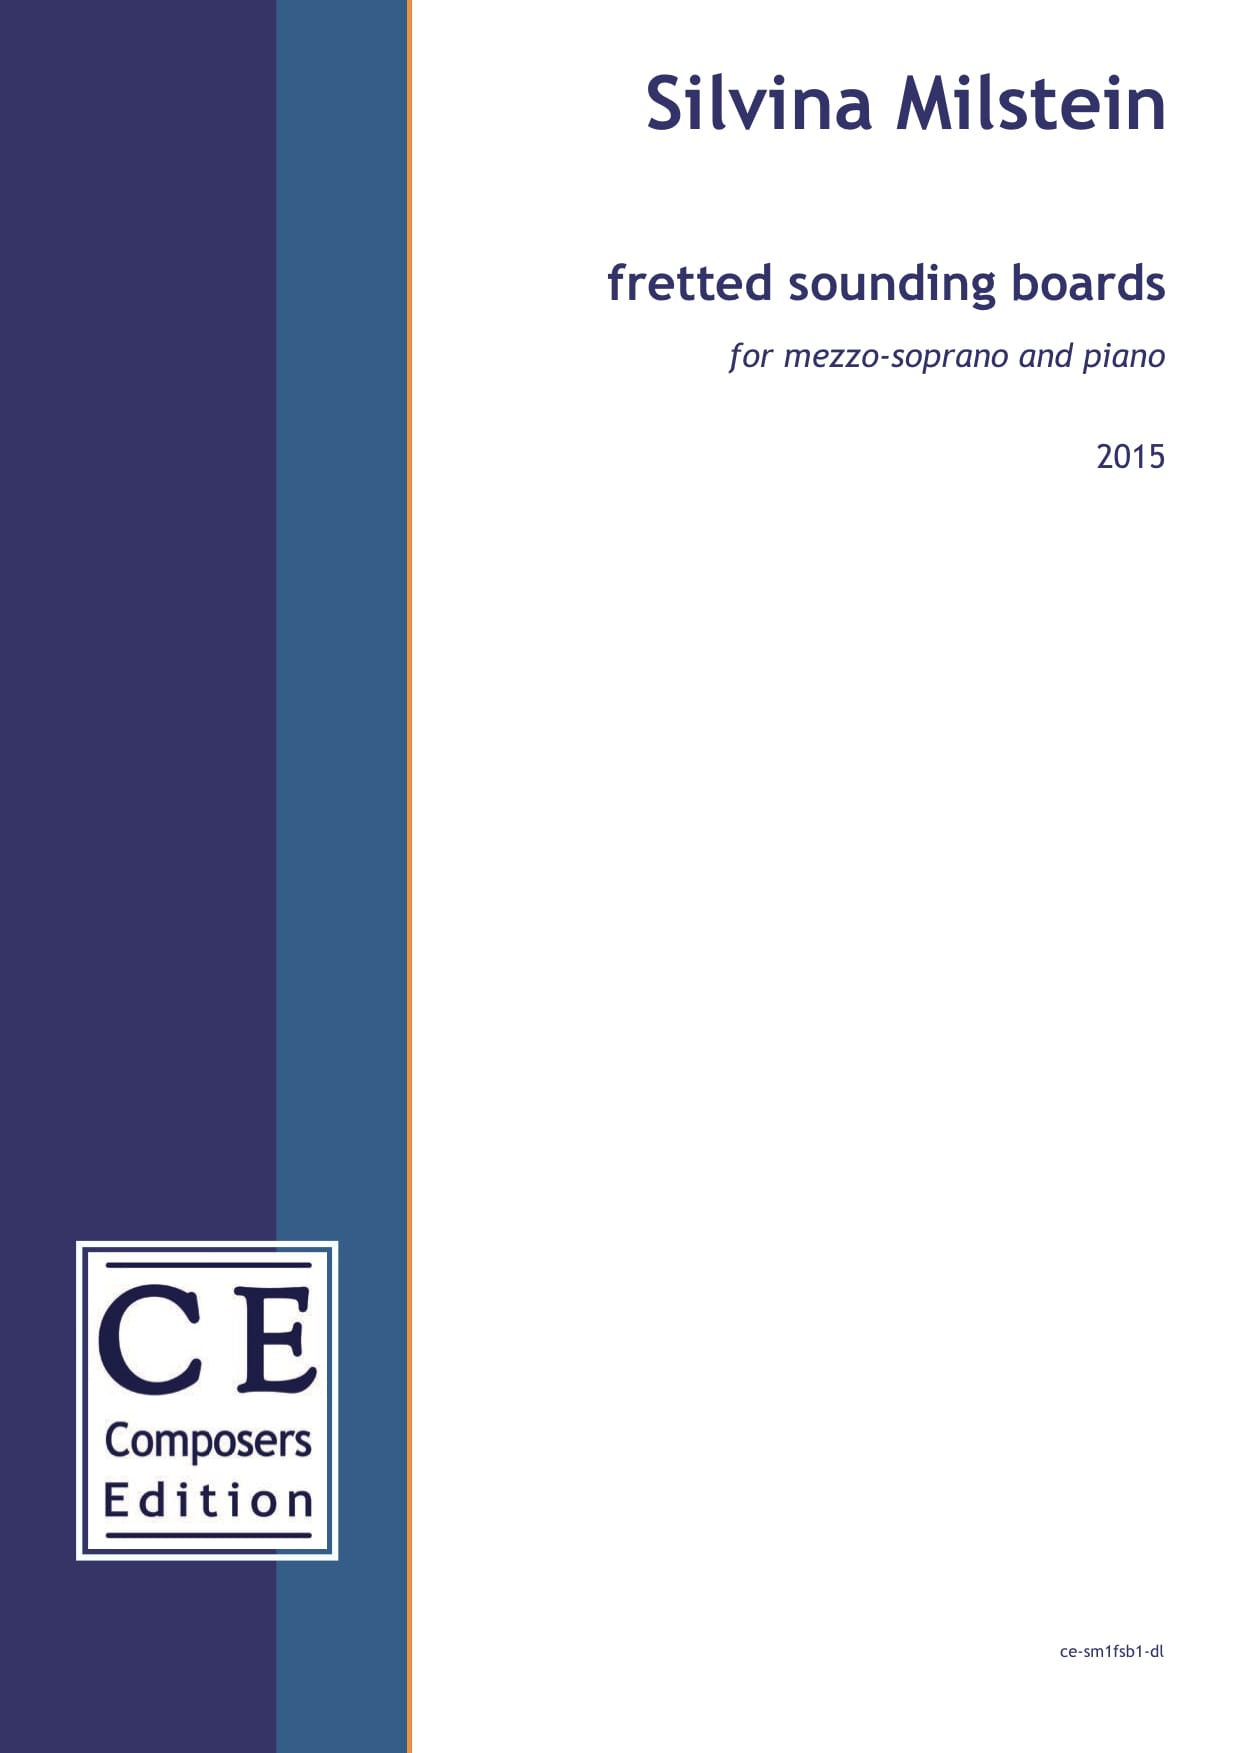 Silvina Milstein: fretted sounding boards for mezzo-soprano and piano